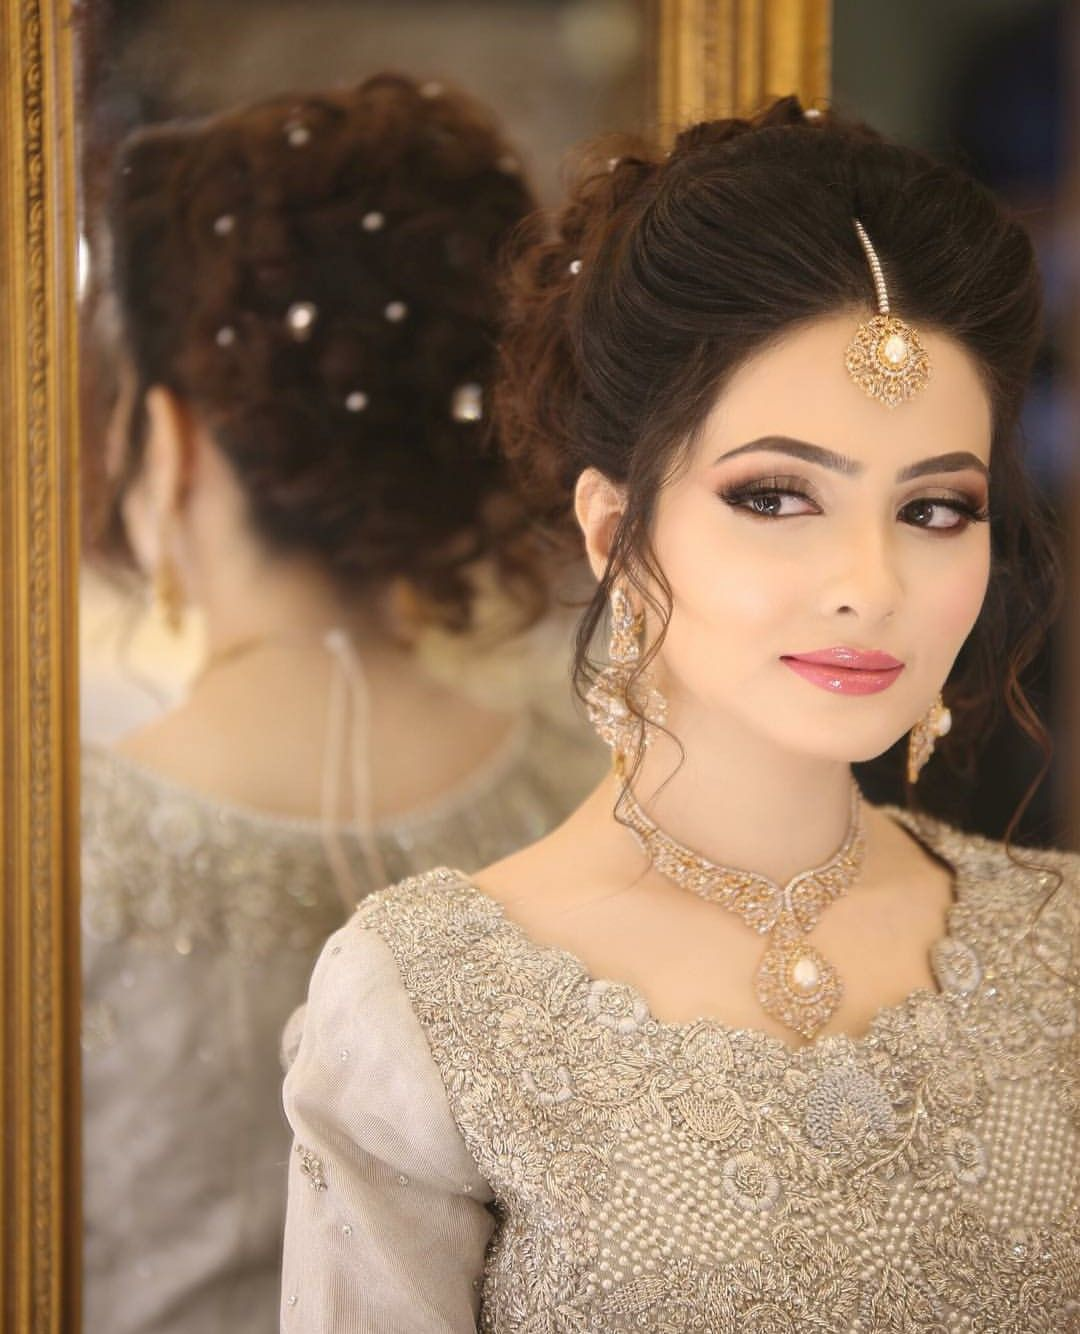 afshii majid | brides and the grooms in 2019 | bridal hair